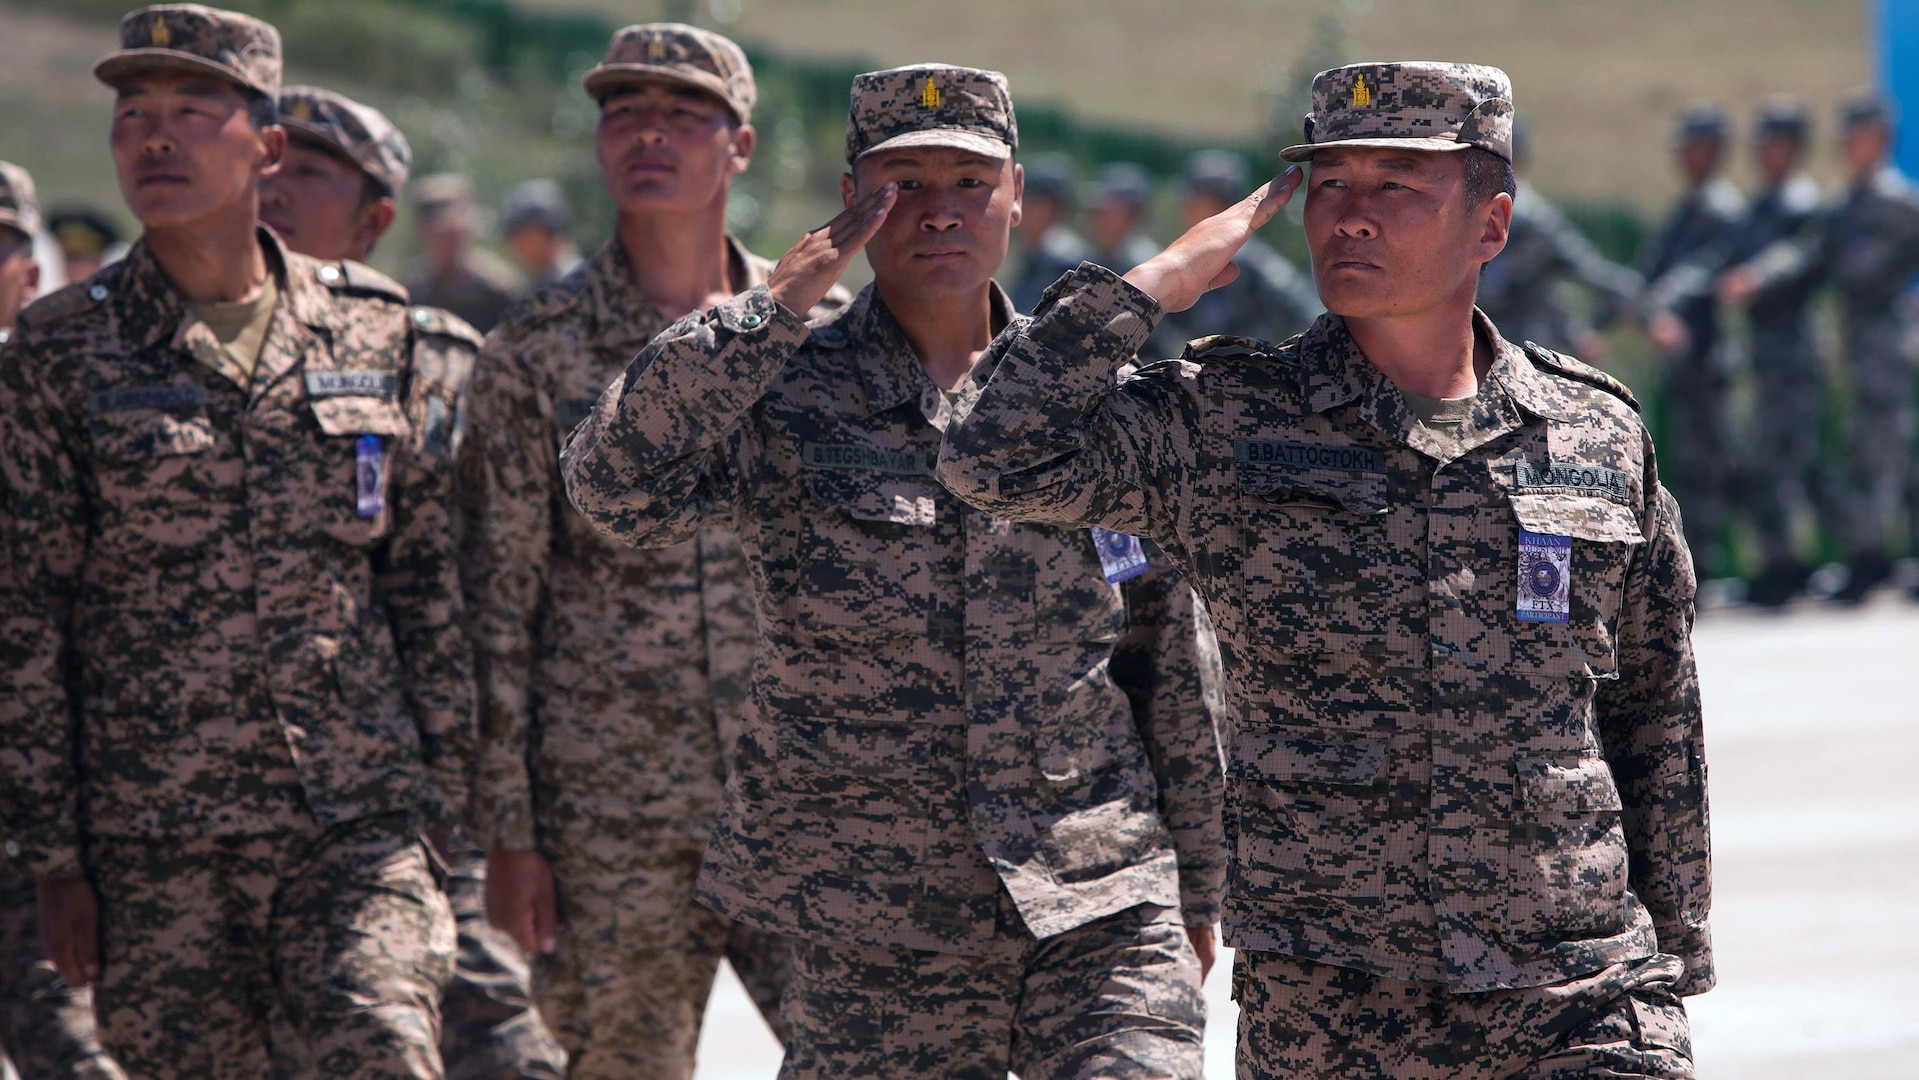 Mongolian Armed Forces service members conduct the pass and review during the opening ceremony of Exercise Khaan Quest 2017 at Five Hills Training Area, Mongolia, July 23, 2017. Khaan Quest 2017 is a Mongolian-hosted, combined, joint training exercise designed to strengthen the capabilities of the U.S., Mongolia and other partner nations in international peacekeeping operations.